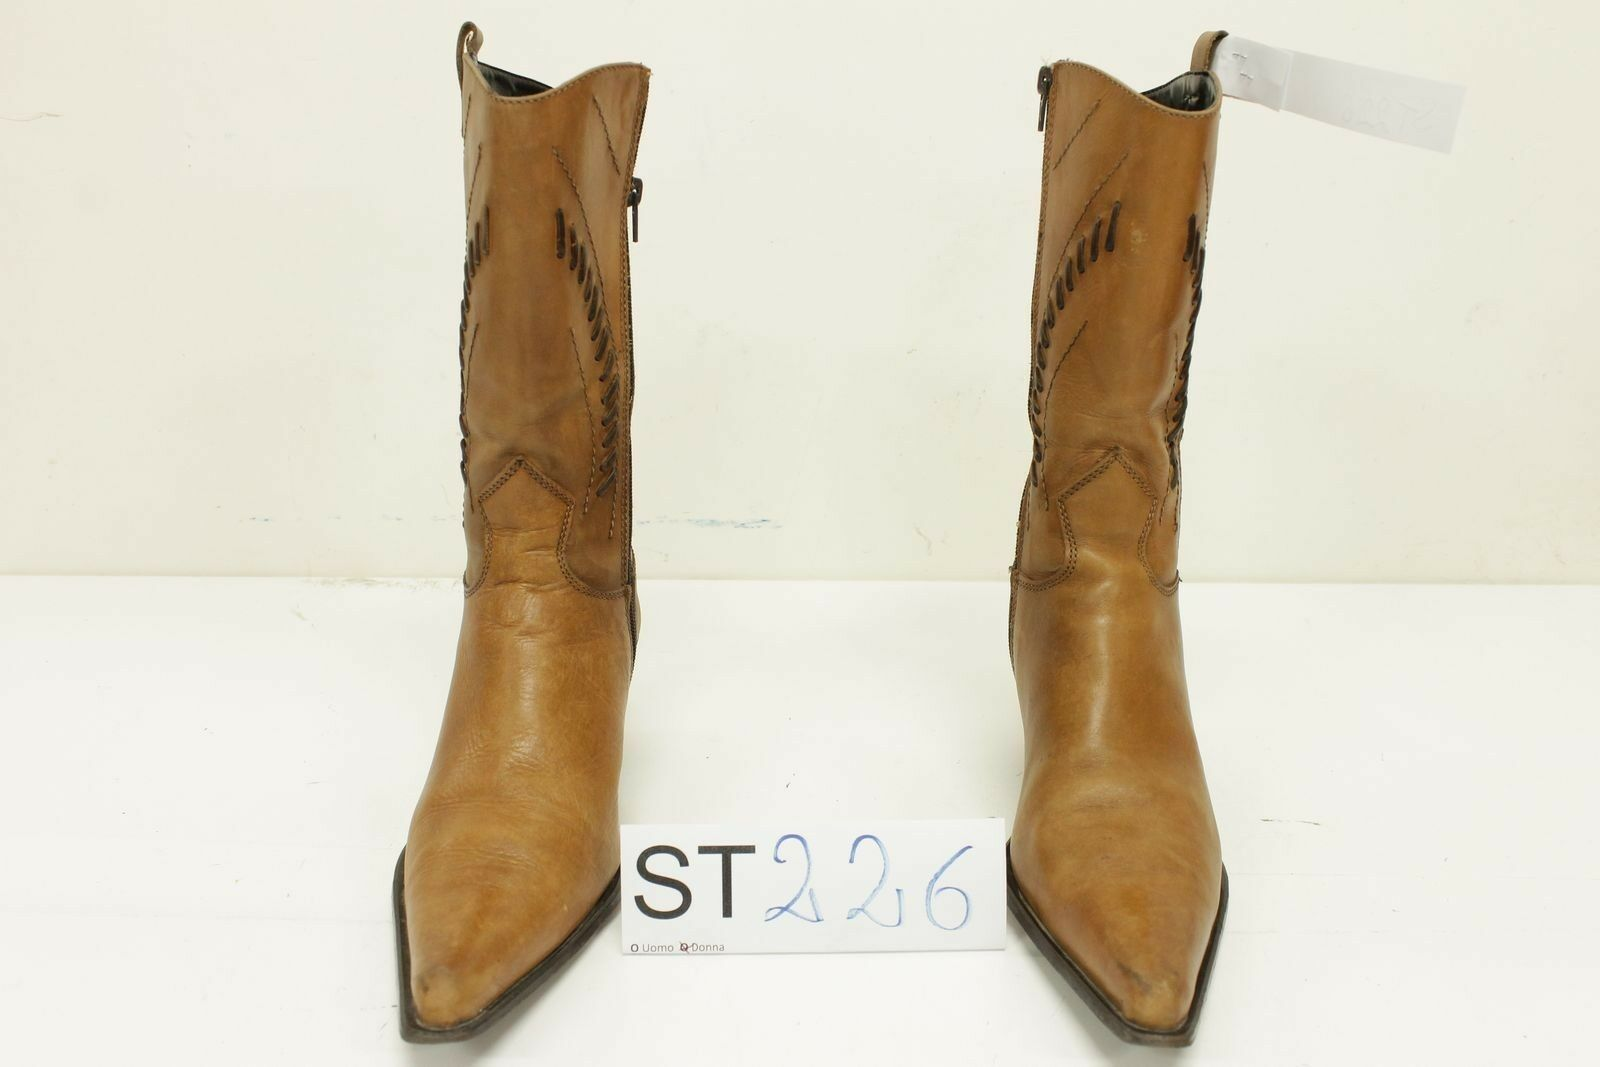 Stivale N.40 (Cod. ST226) Boots Western Country Cowboy women usato